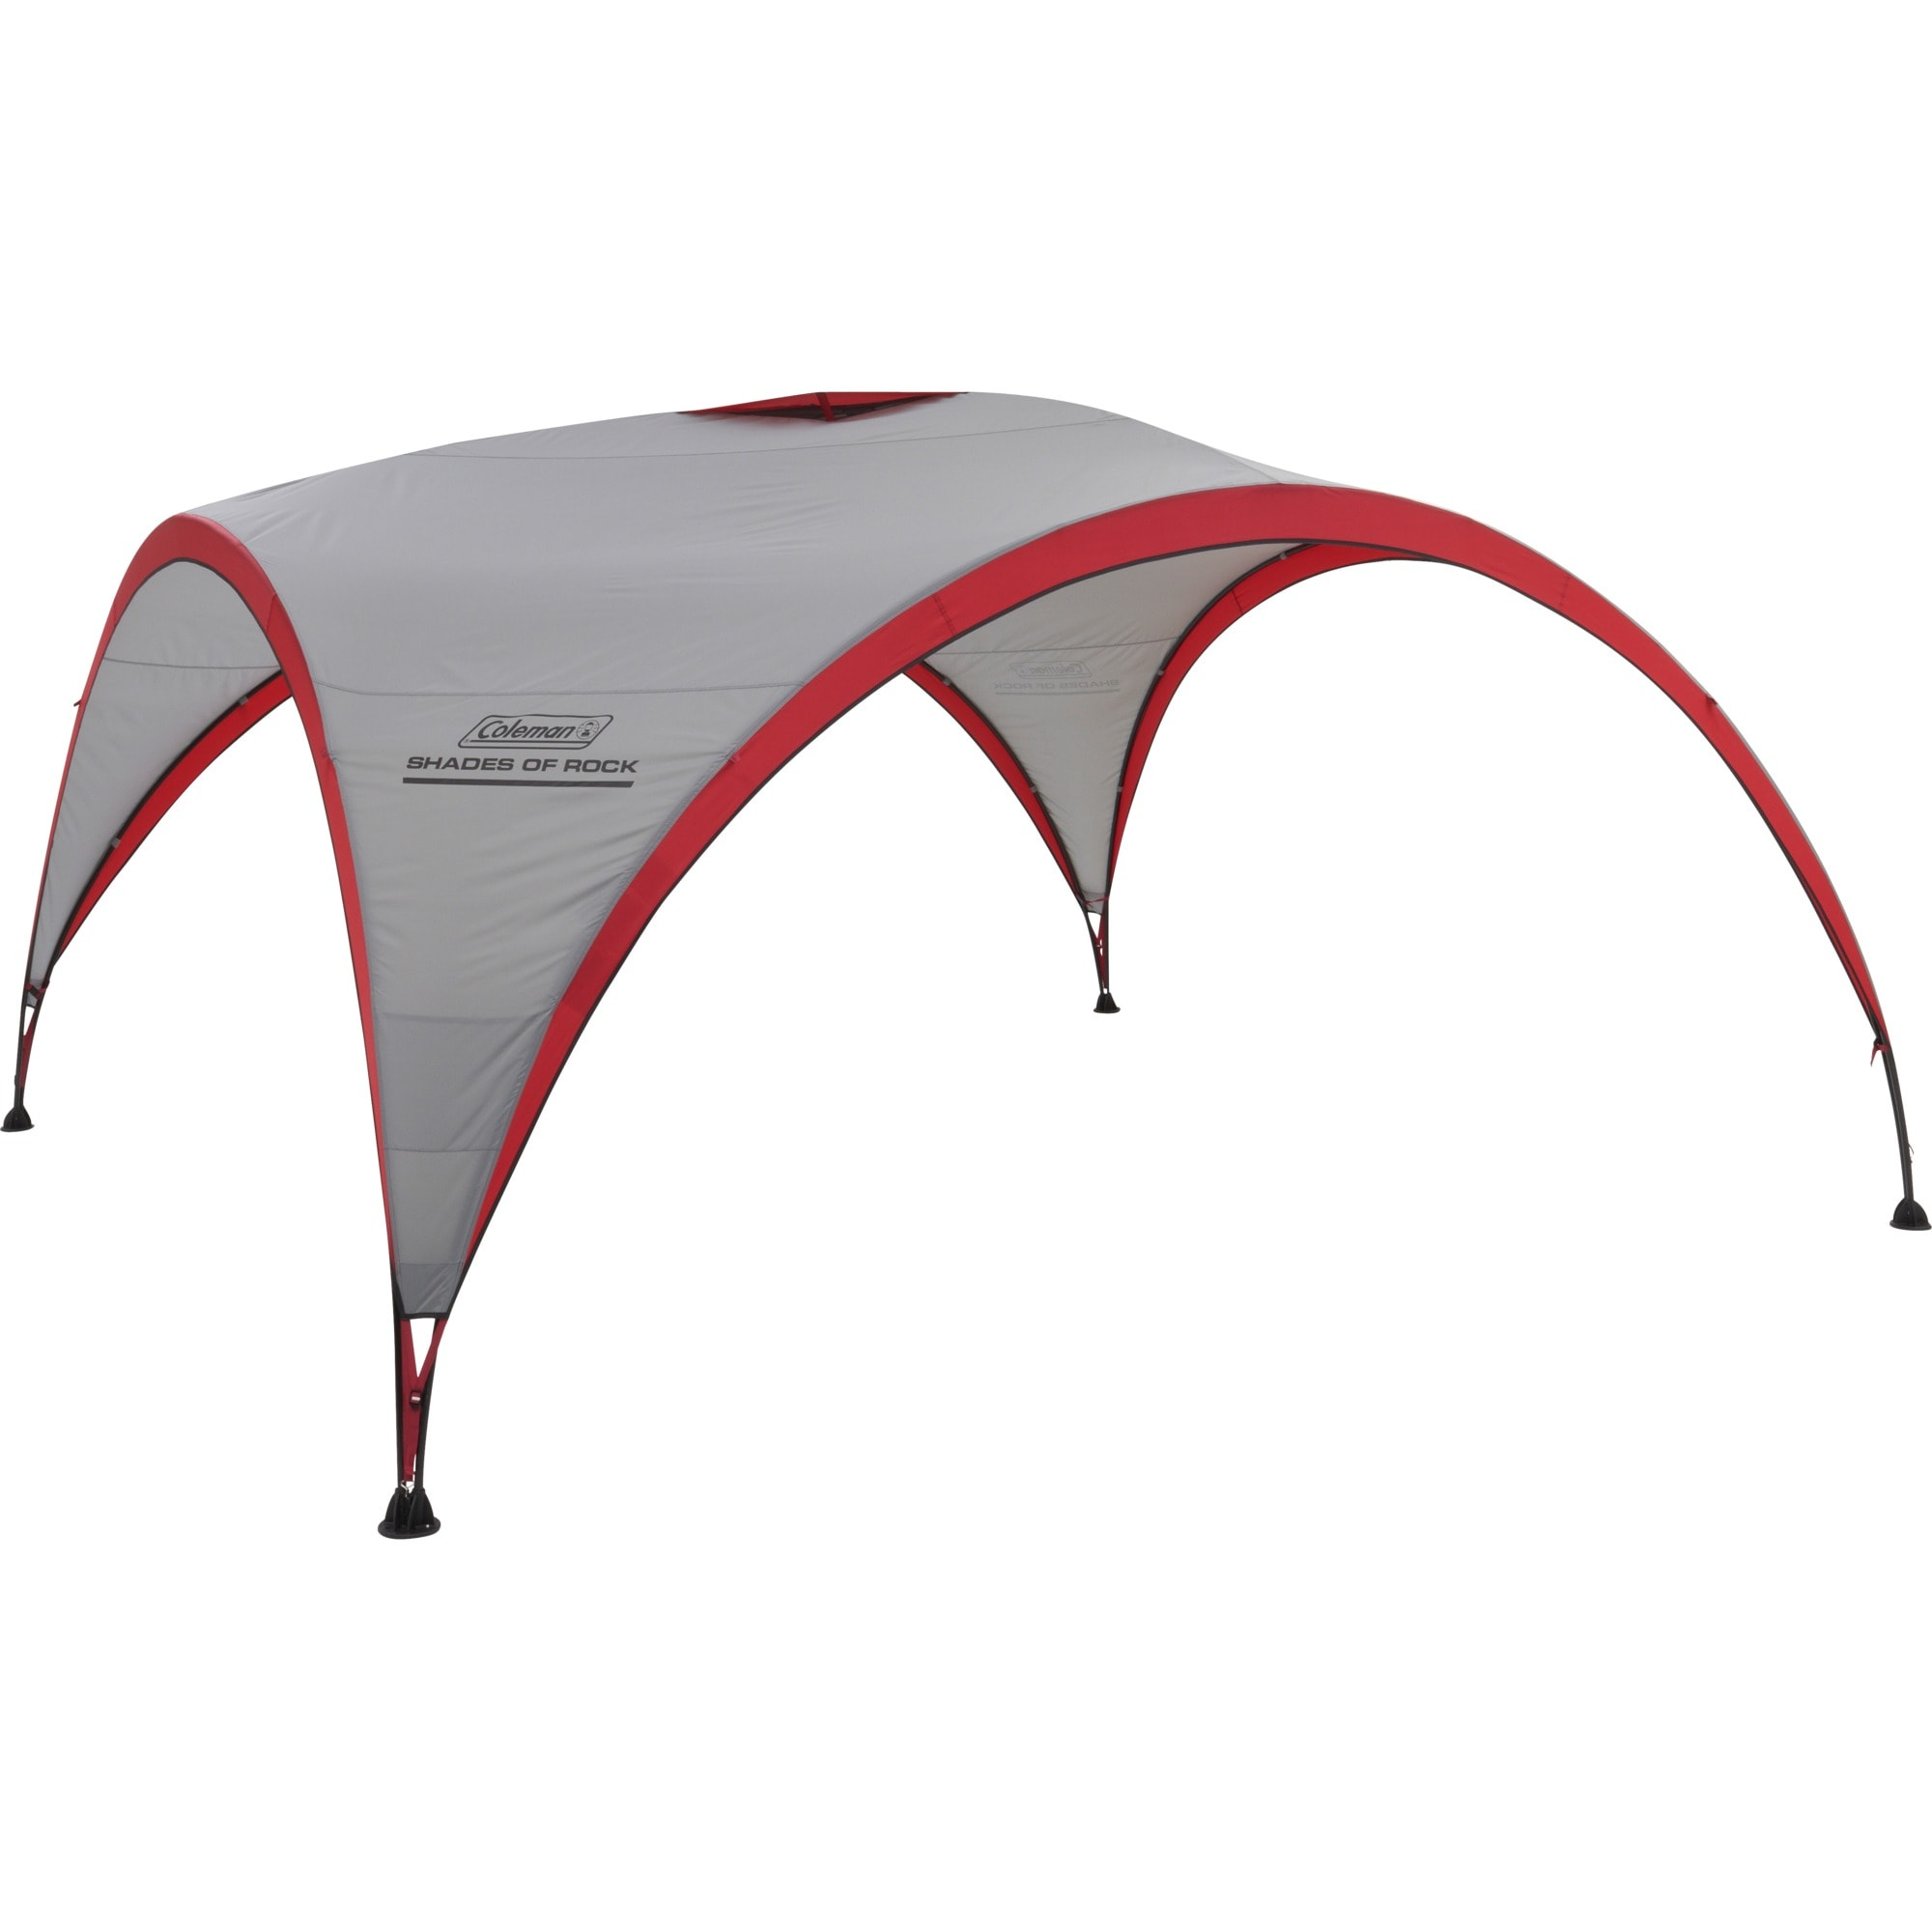 Coleman Pavillon Festival Collection Event Shelter 4,5 x 4,5 M Shades of Rock